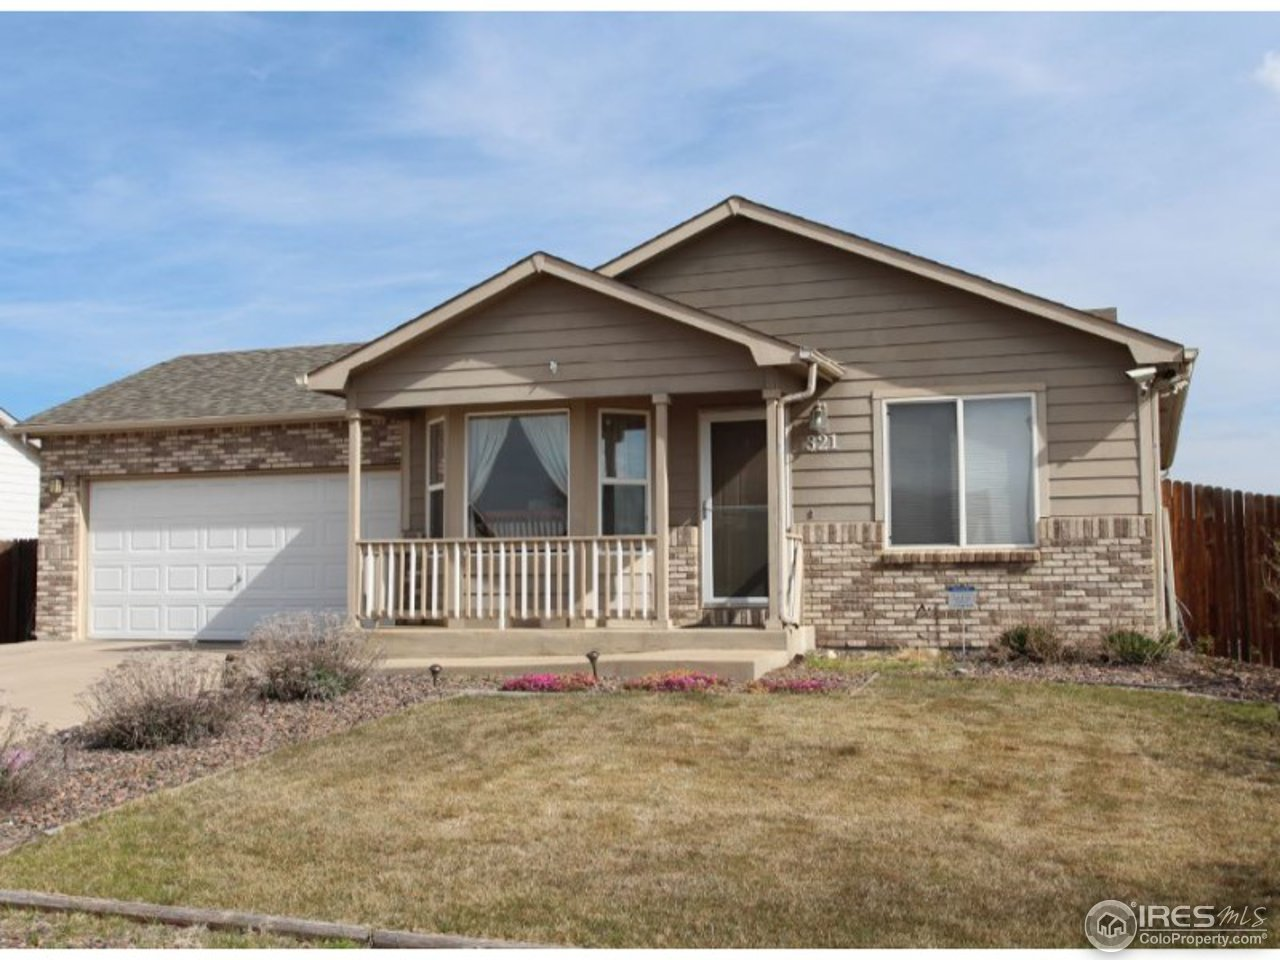 321 E 29th St Rd Loveland Home Listings - Team Cook Real Estate